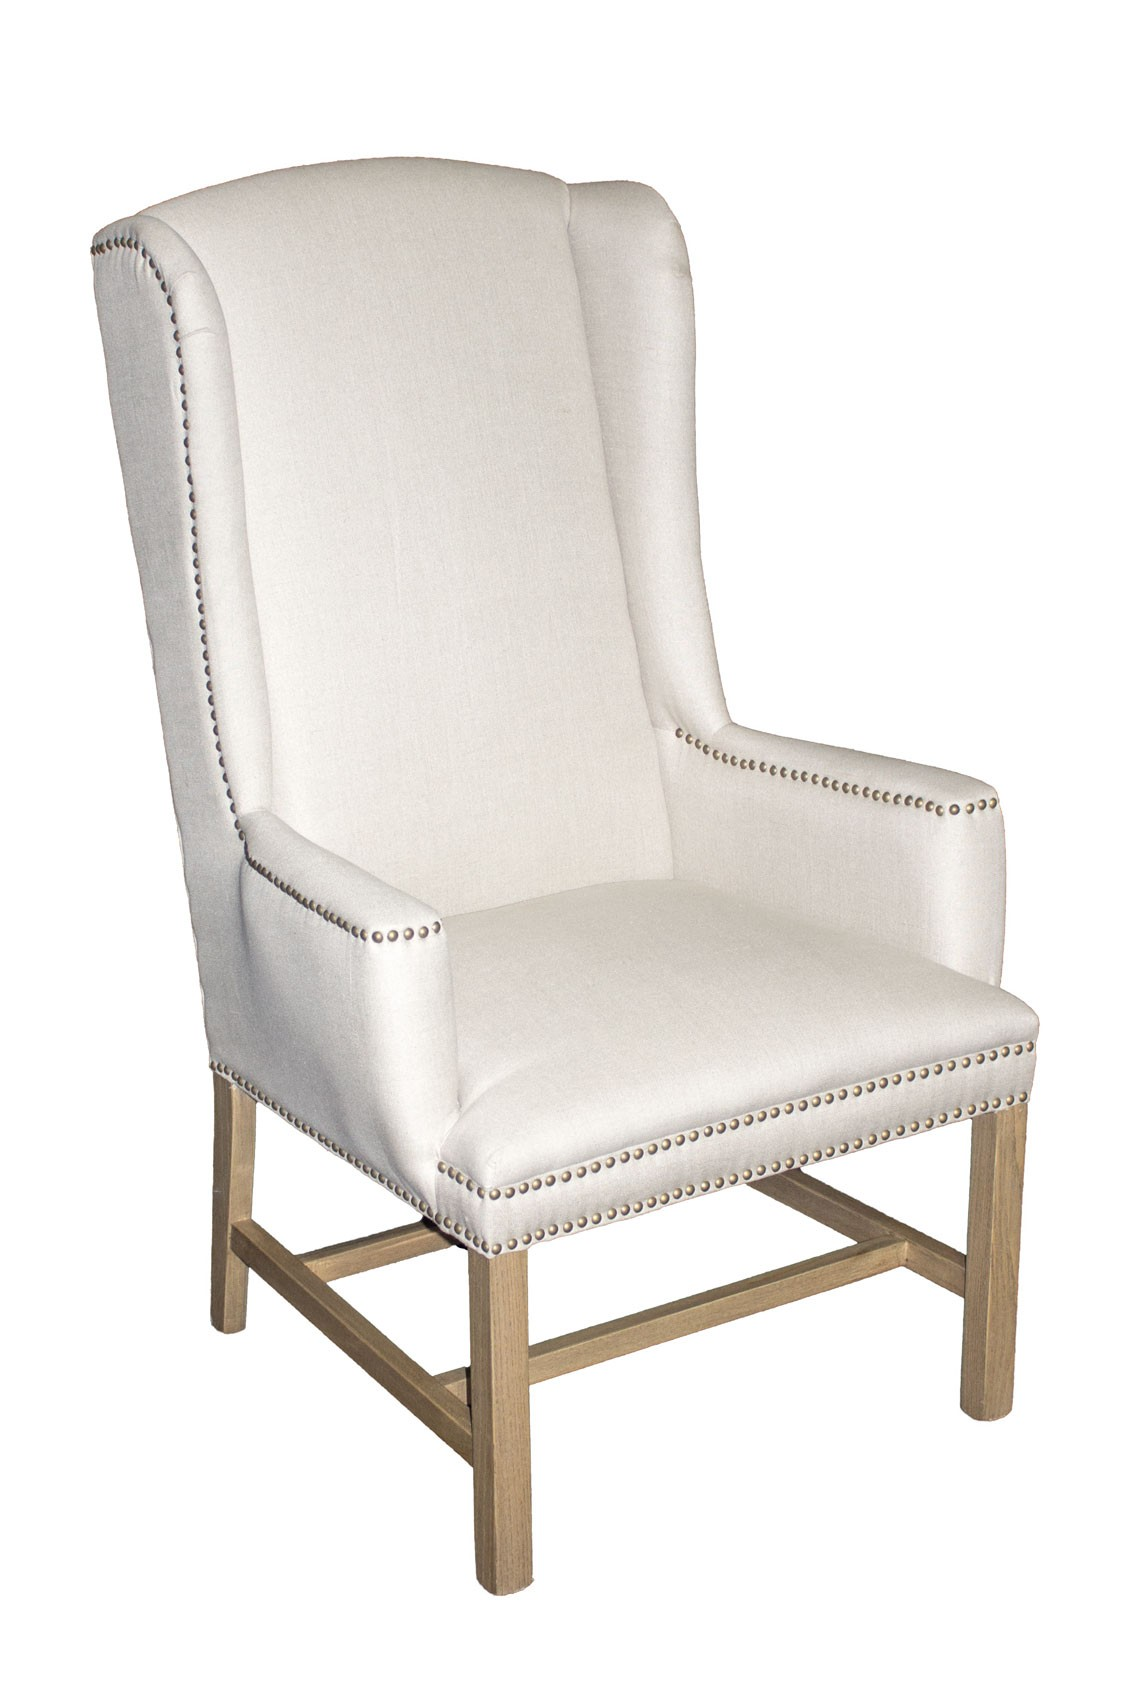 Ic170 linen wing back chair tall back dining chair for Wing back dining chairs